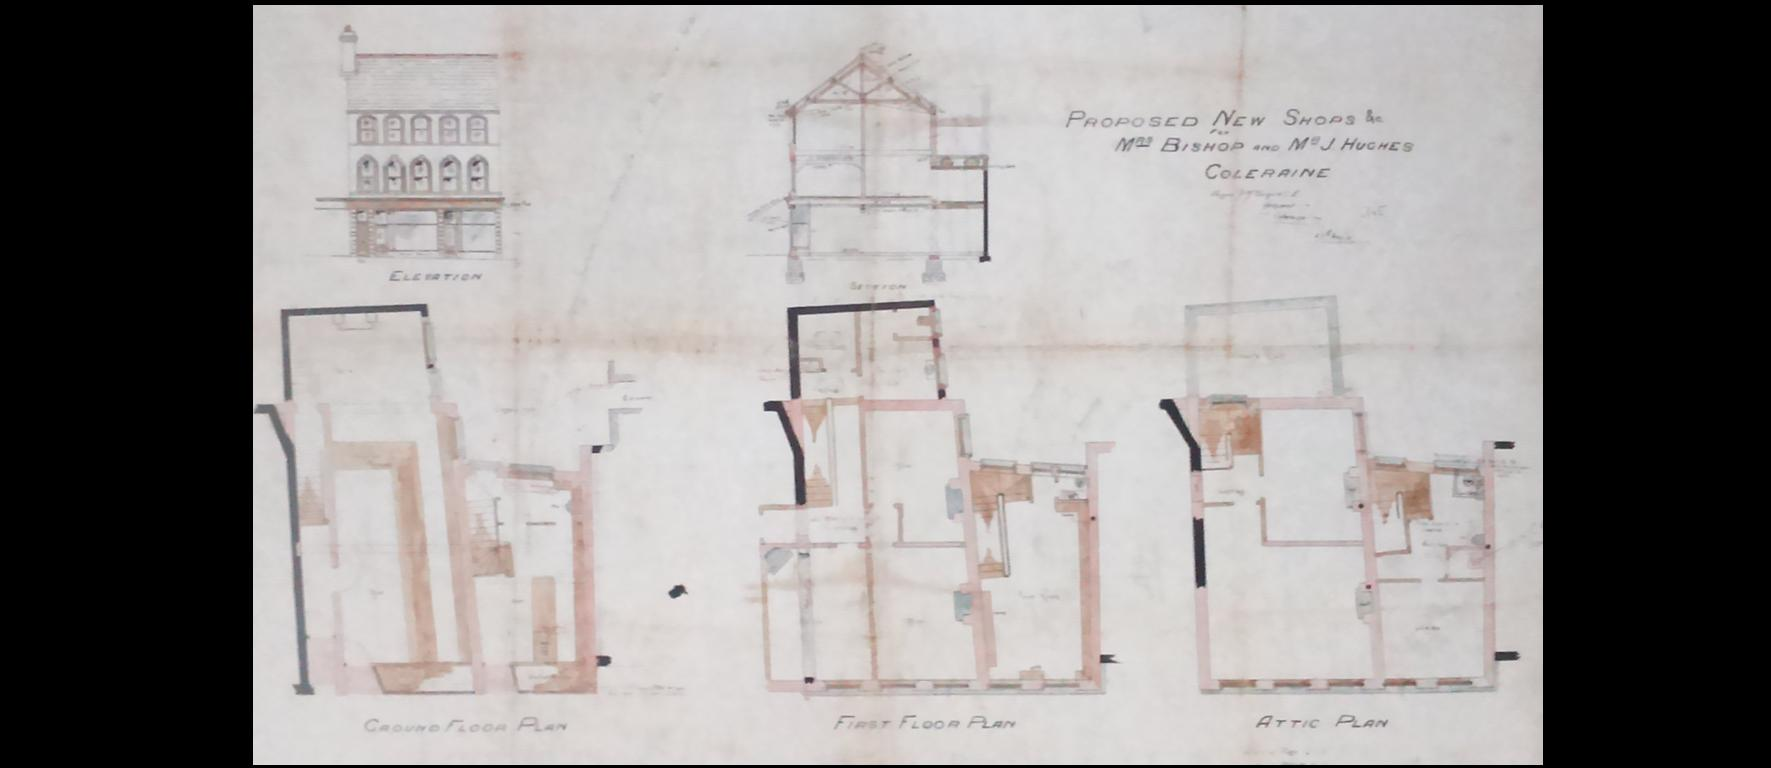 Plans from 1905 for new Premises for Mrs Bishop